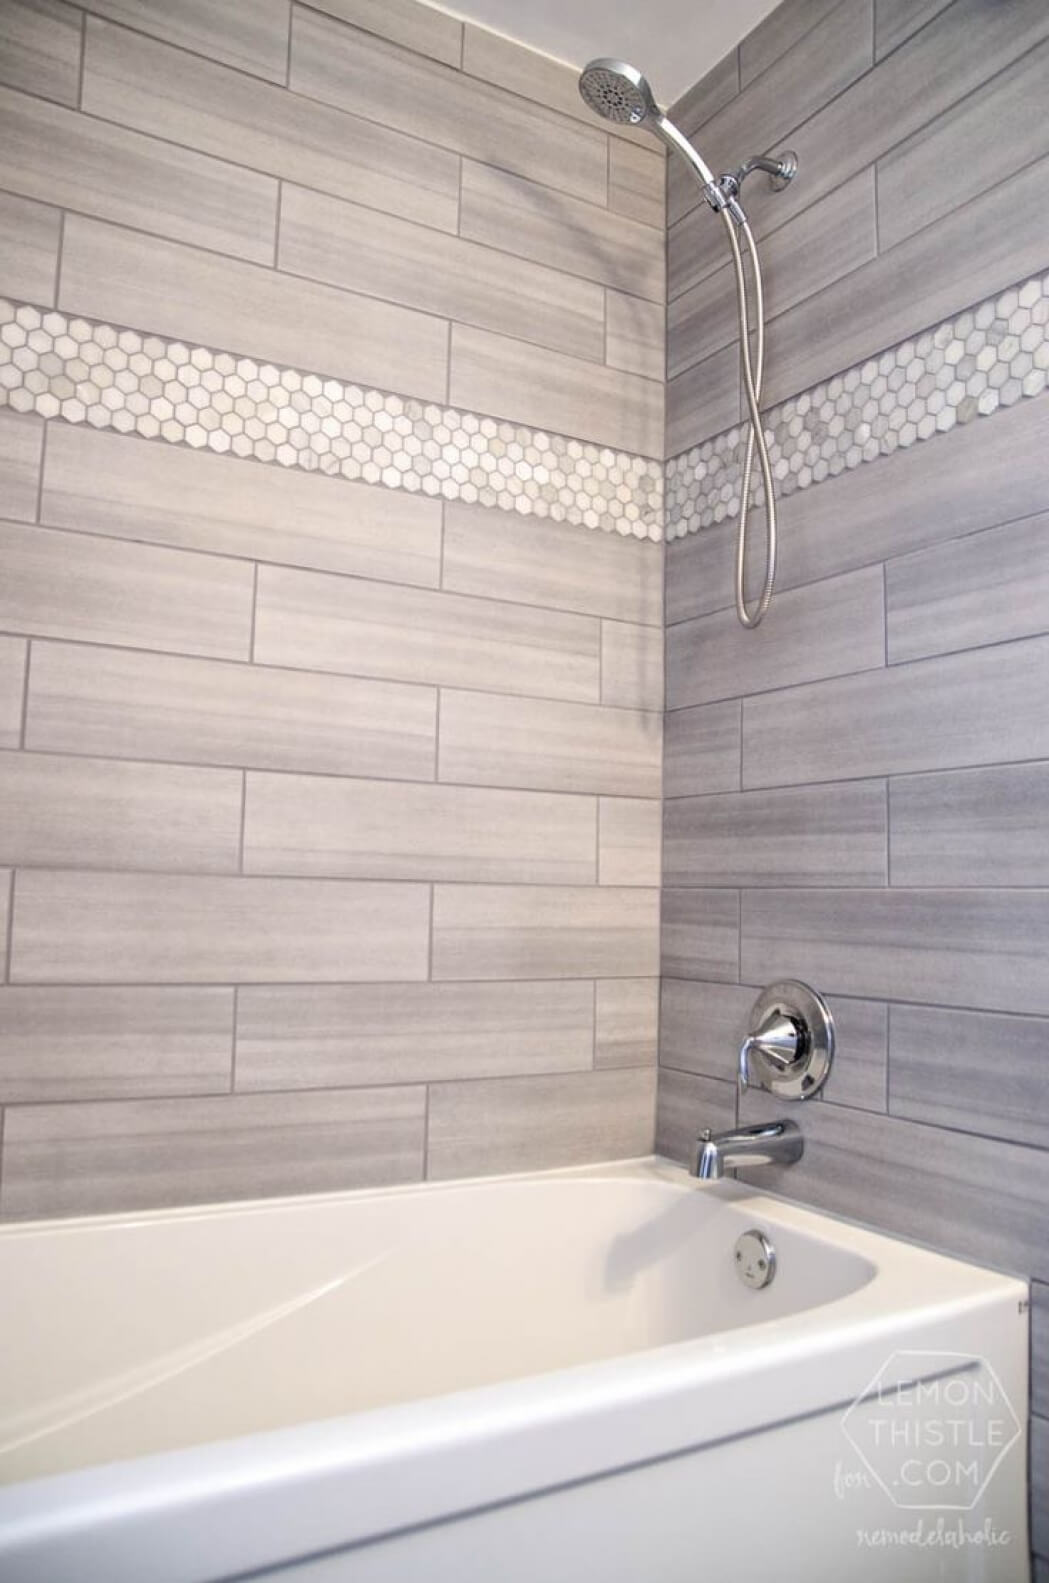 Lapland Pearl Two Tone Tile Pattern